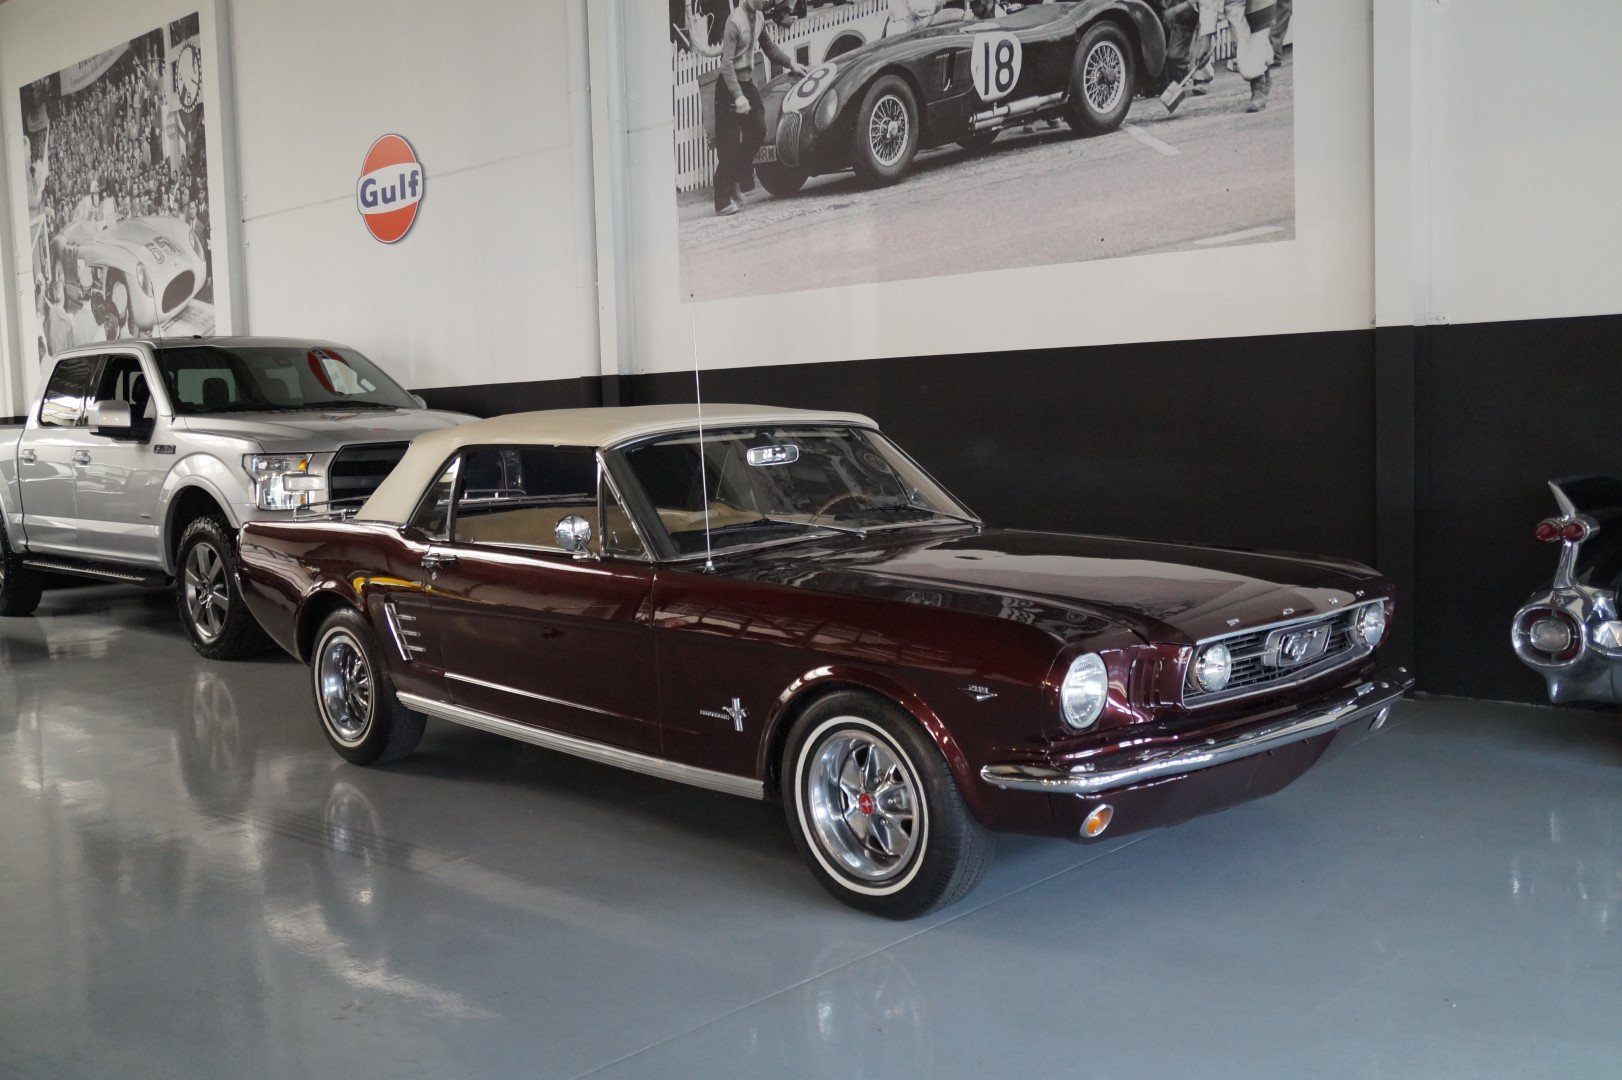 FORD MUSTANG 289 V8 Convertible (1966) Top condition! For Sale (picture 1 of 6)